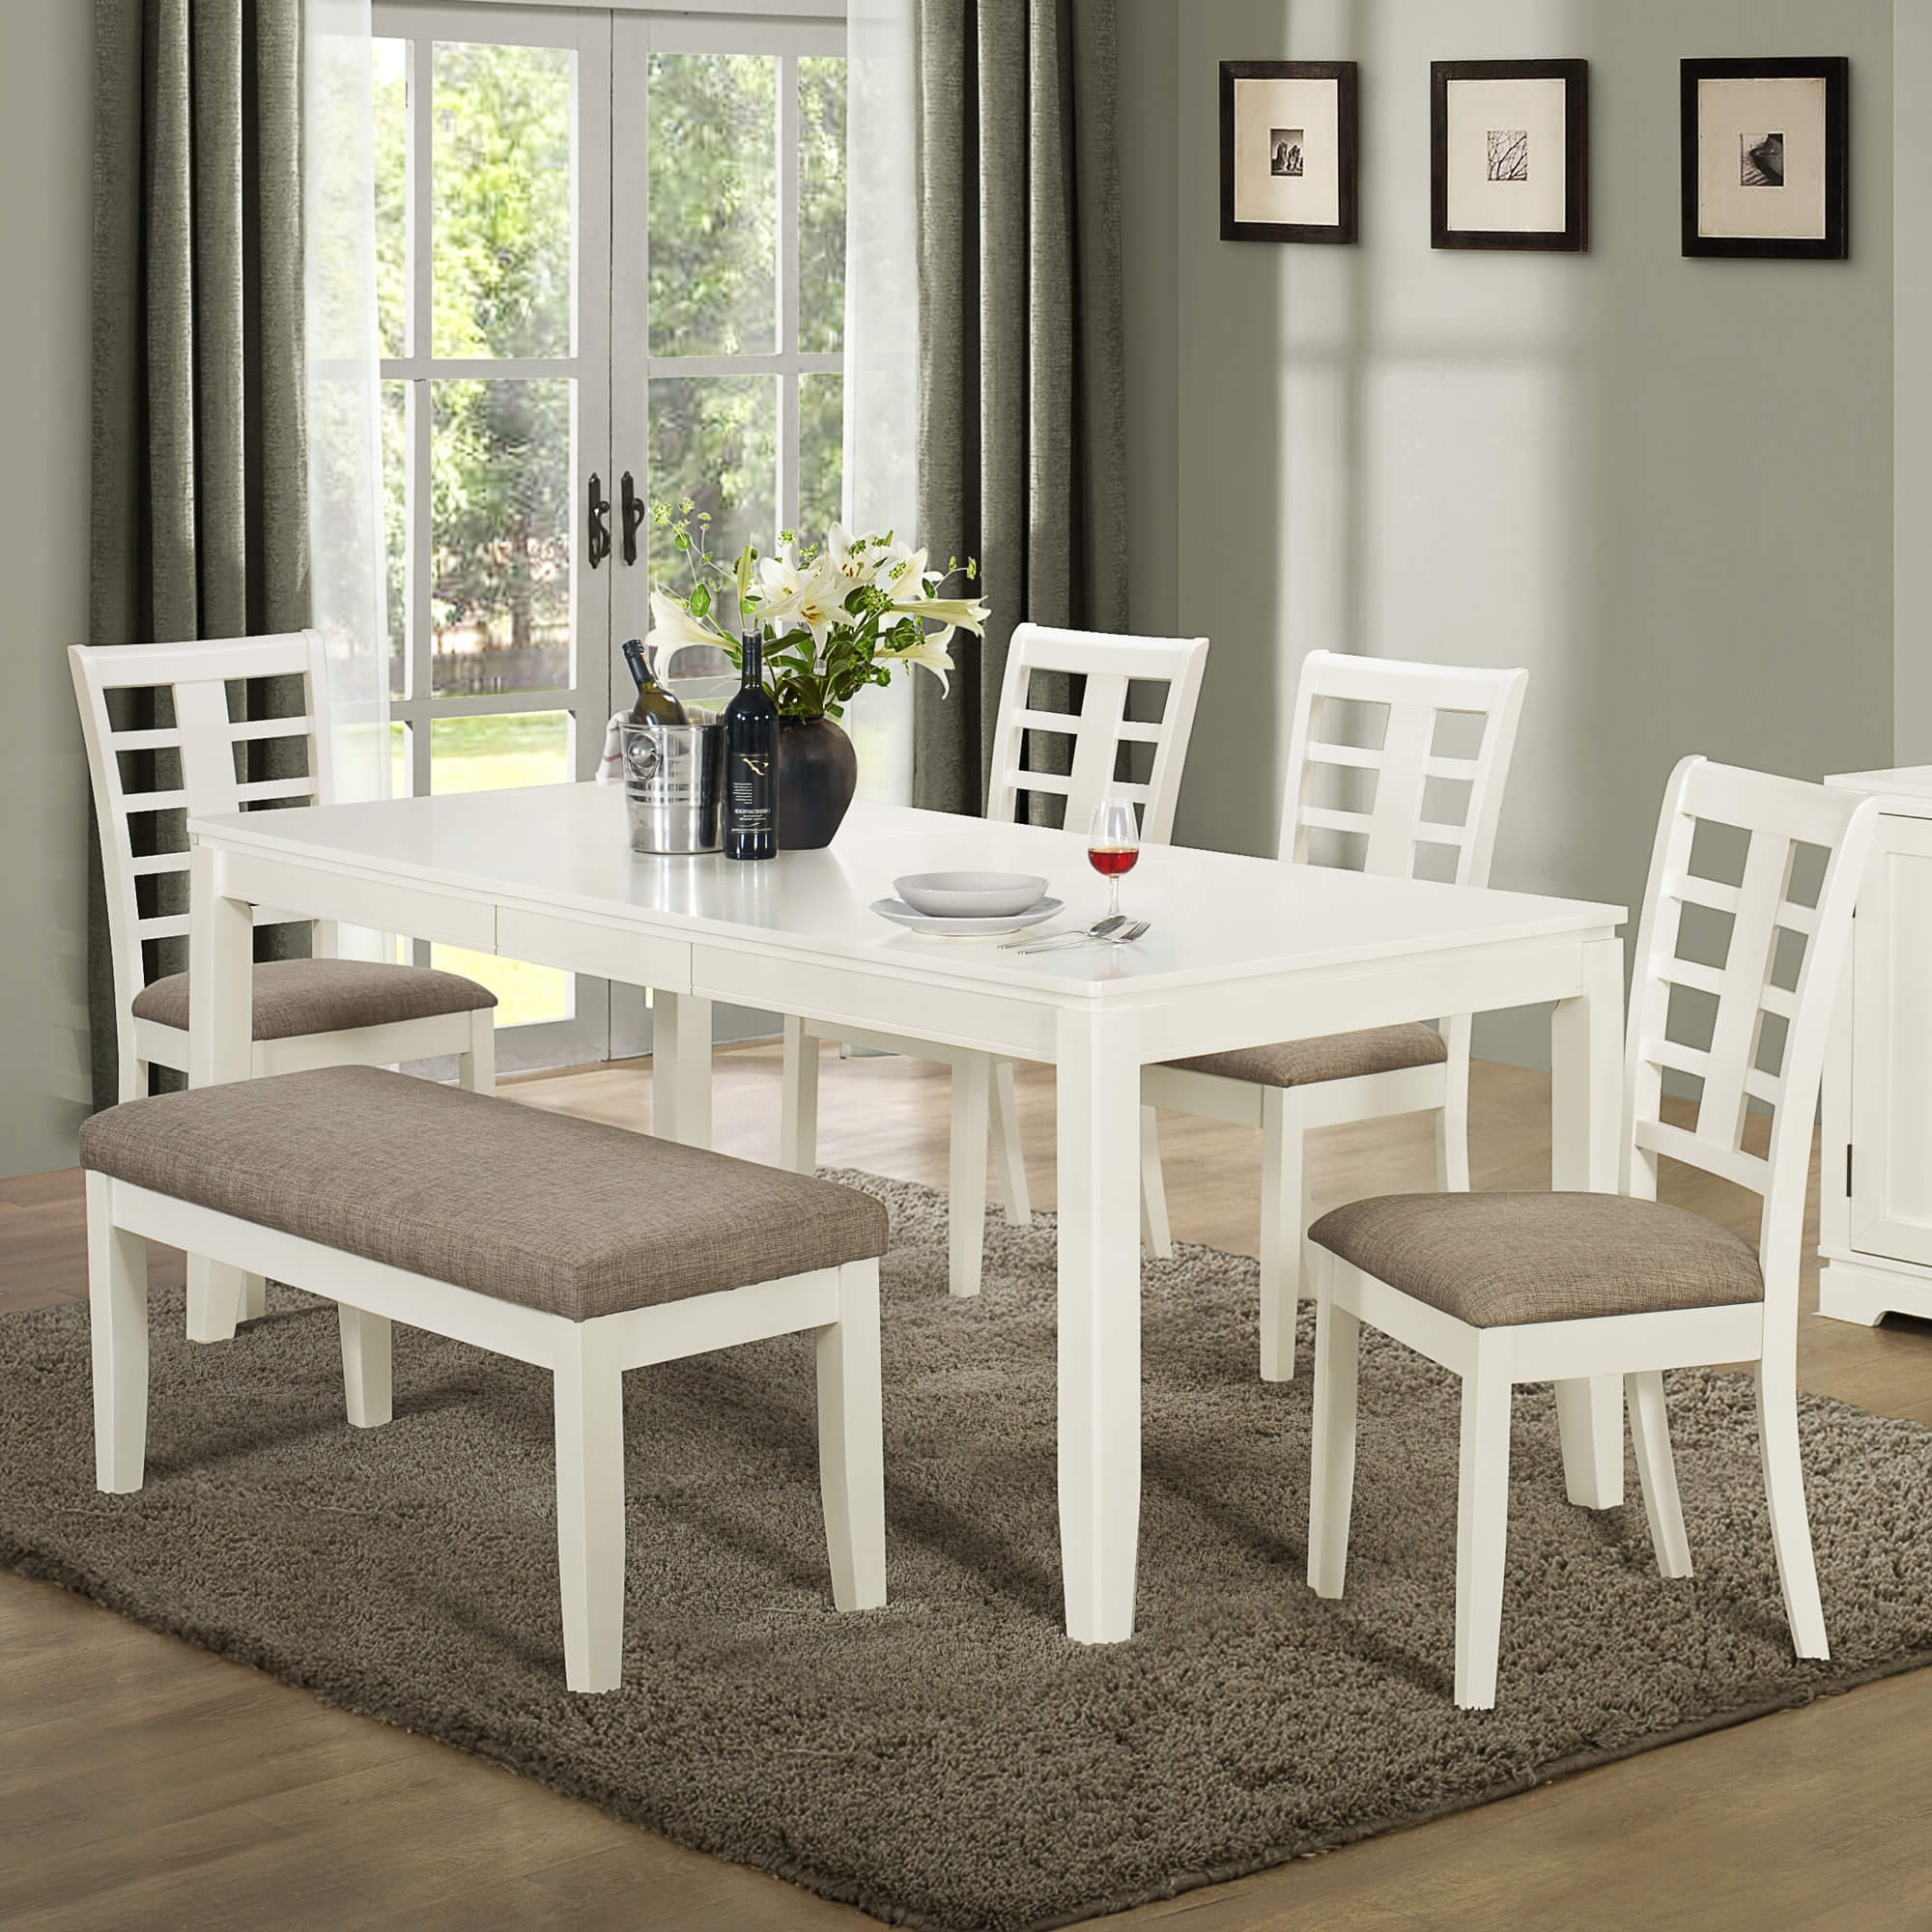 Popular White Dining Tables Sets In 26 Dining Room Sets (Big And Small) With Bench Seating (2018) (View 11 of 25)